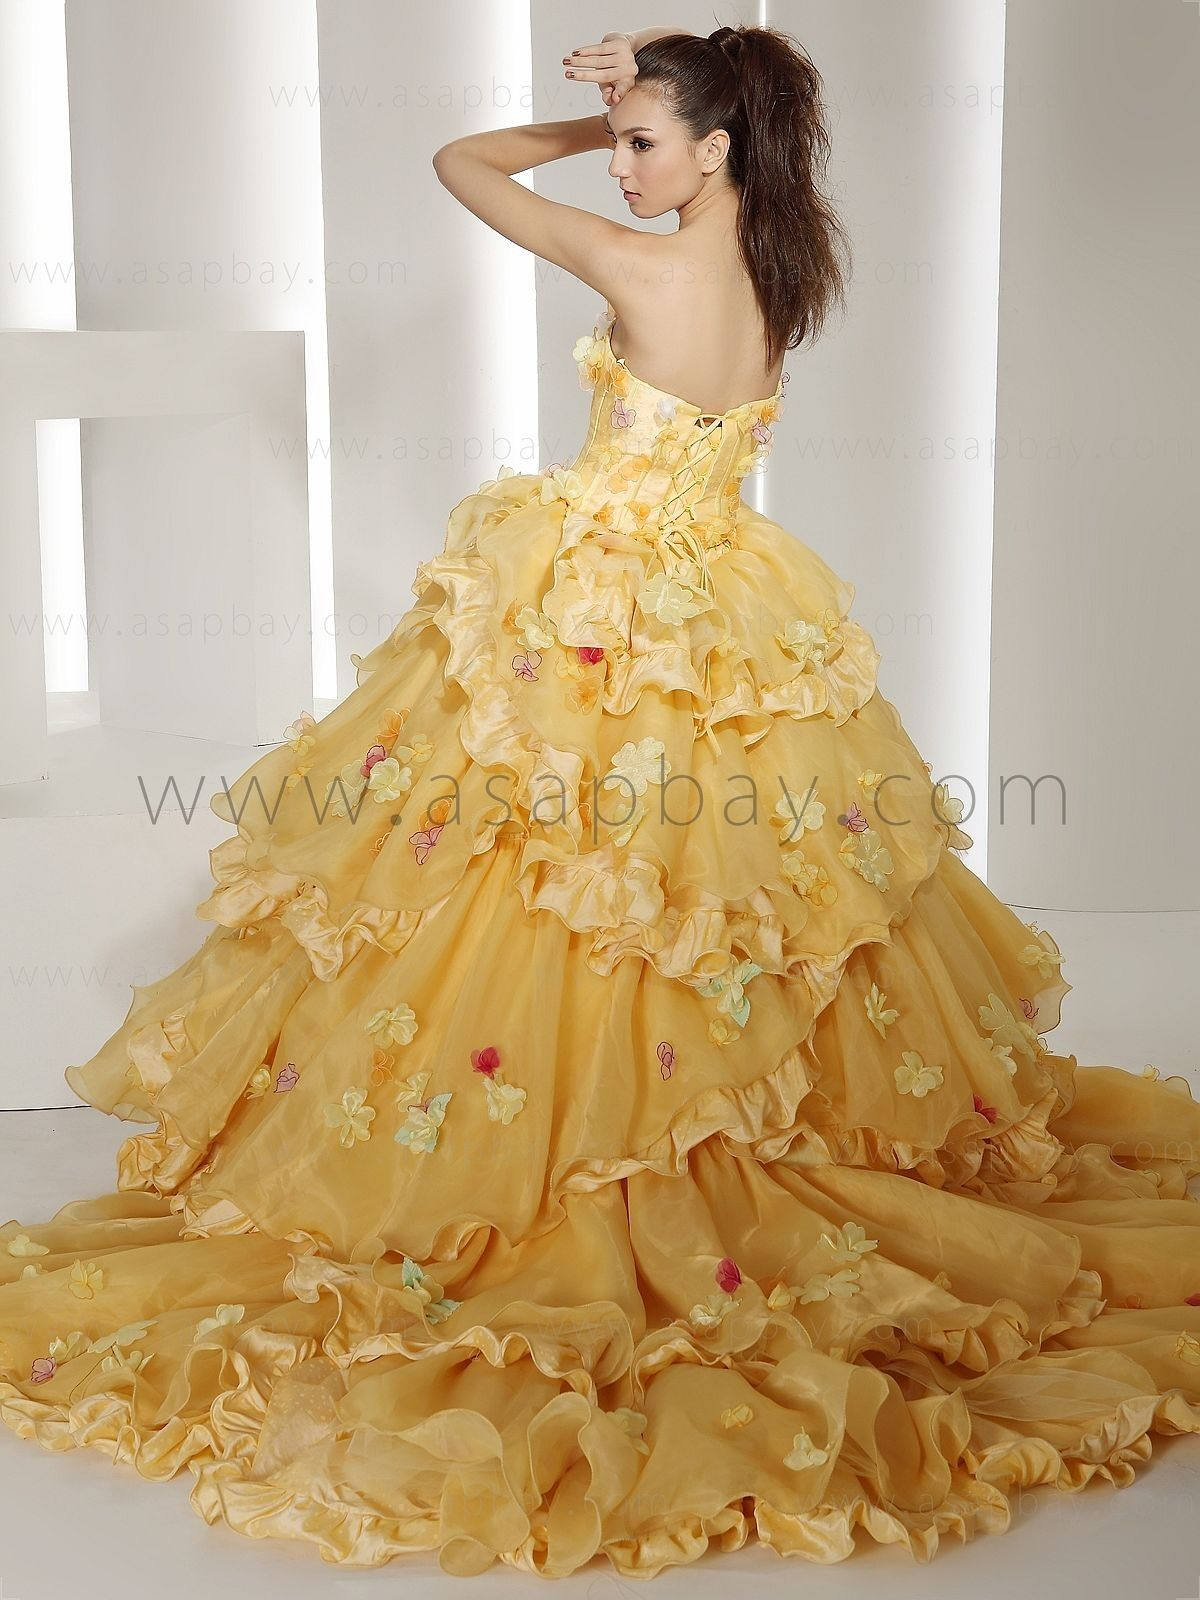 yellow wedding dress google search